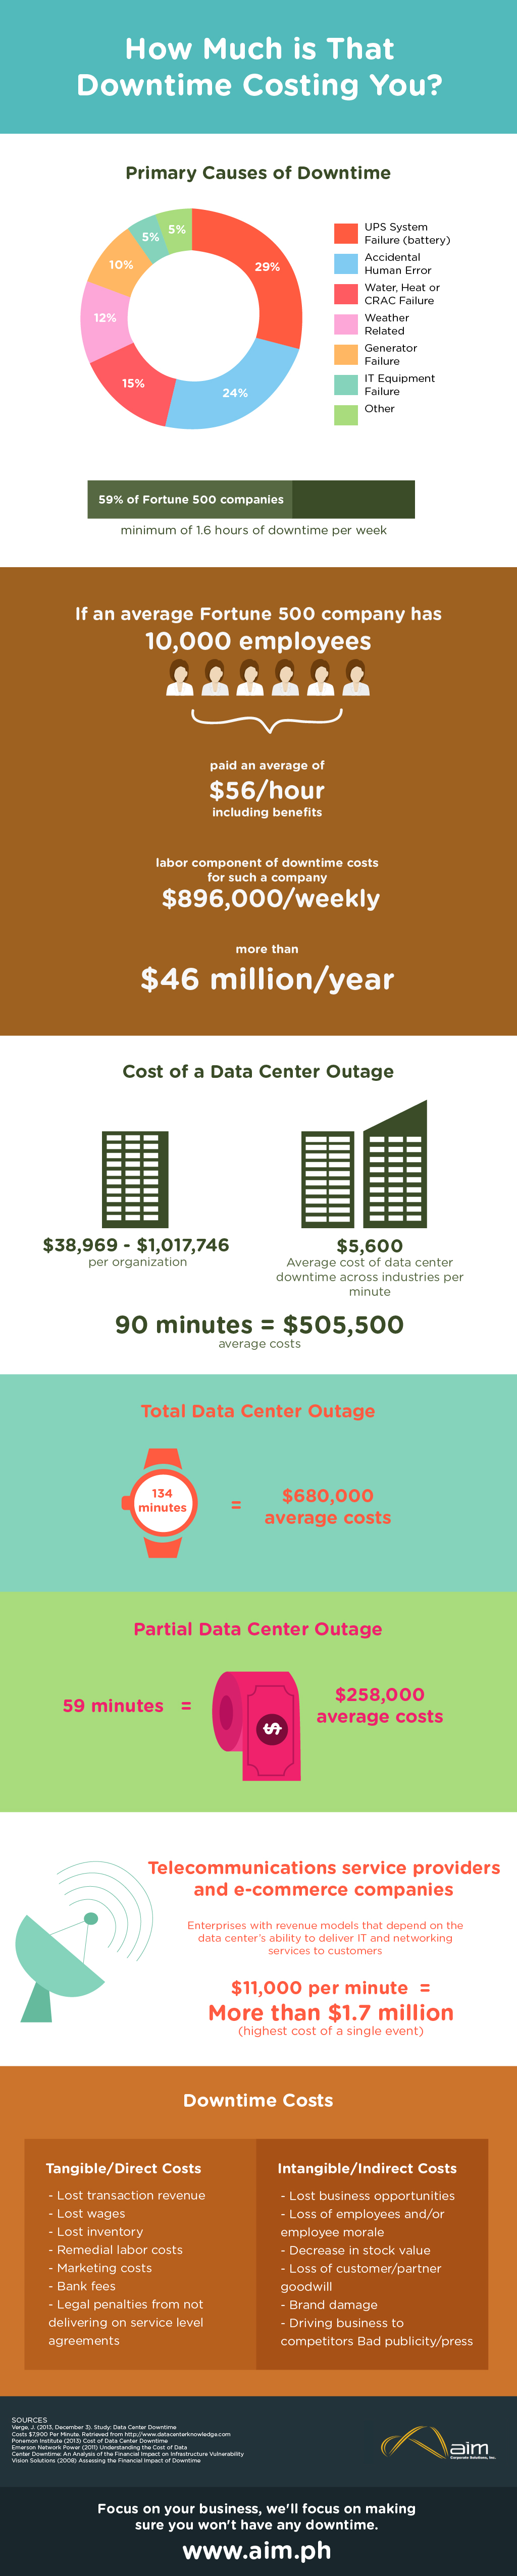 cost-of-downtime-infographic